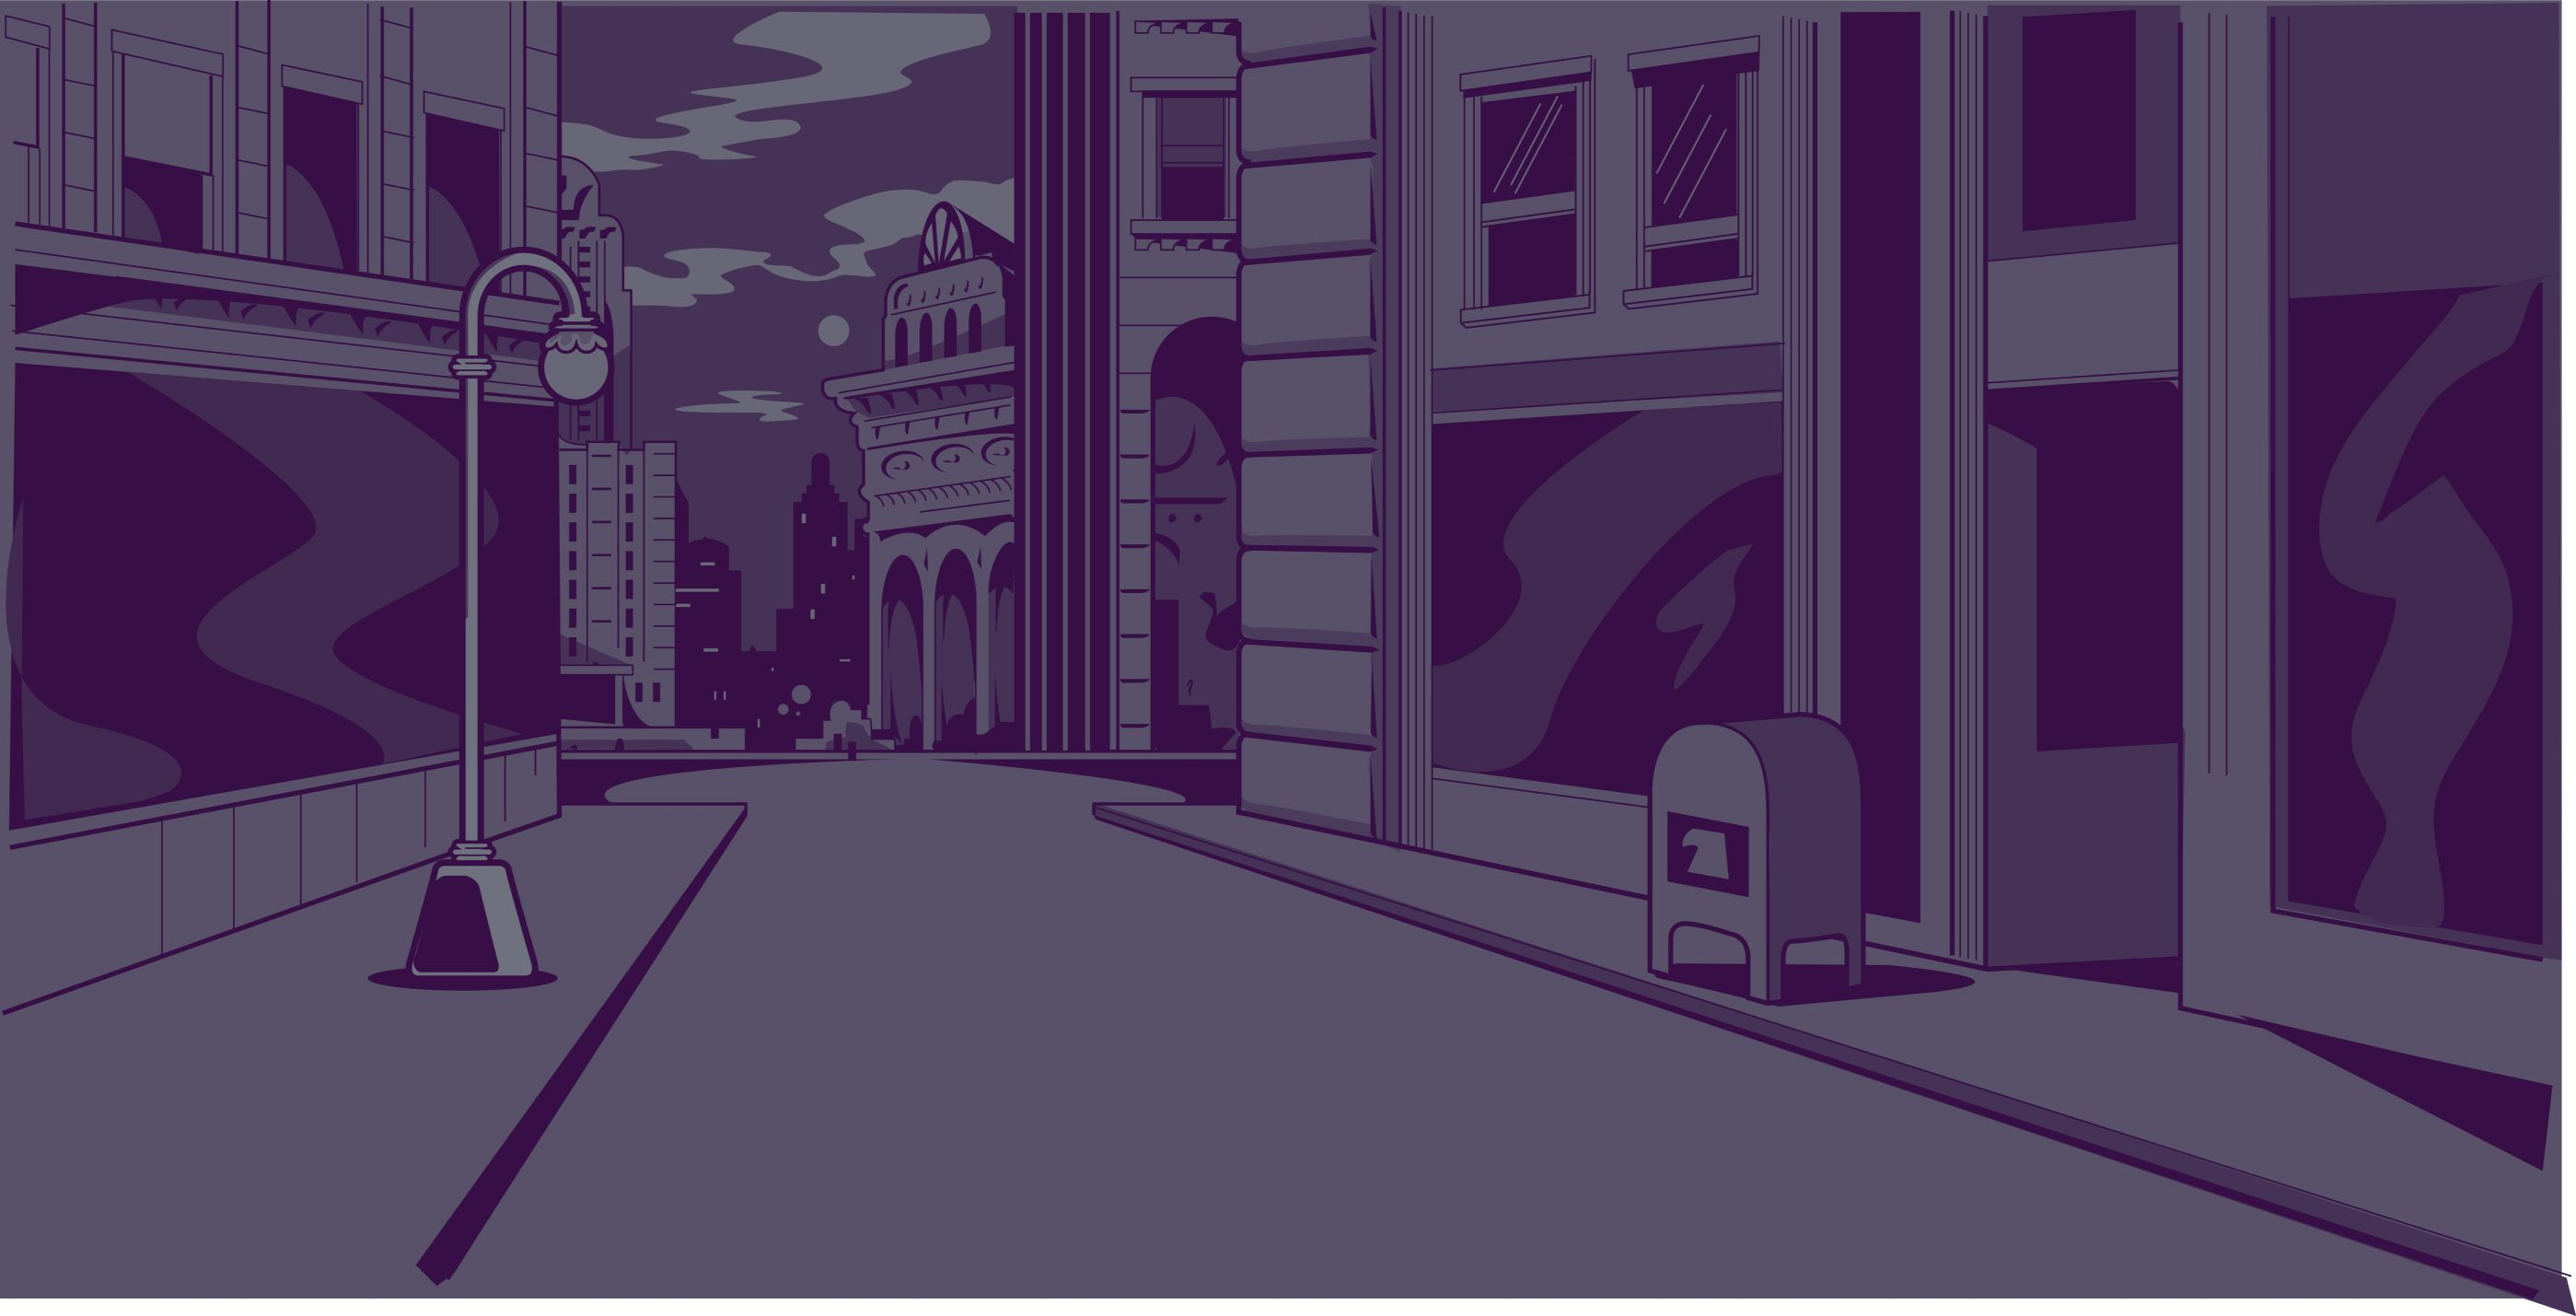 Drawn streetscape at dusk in blues and purples.